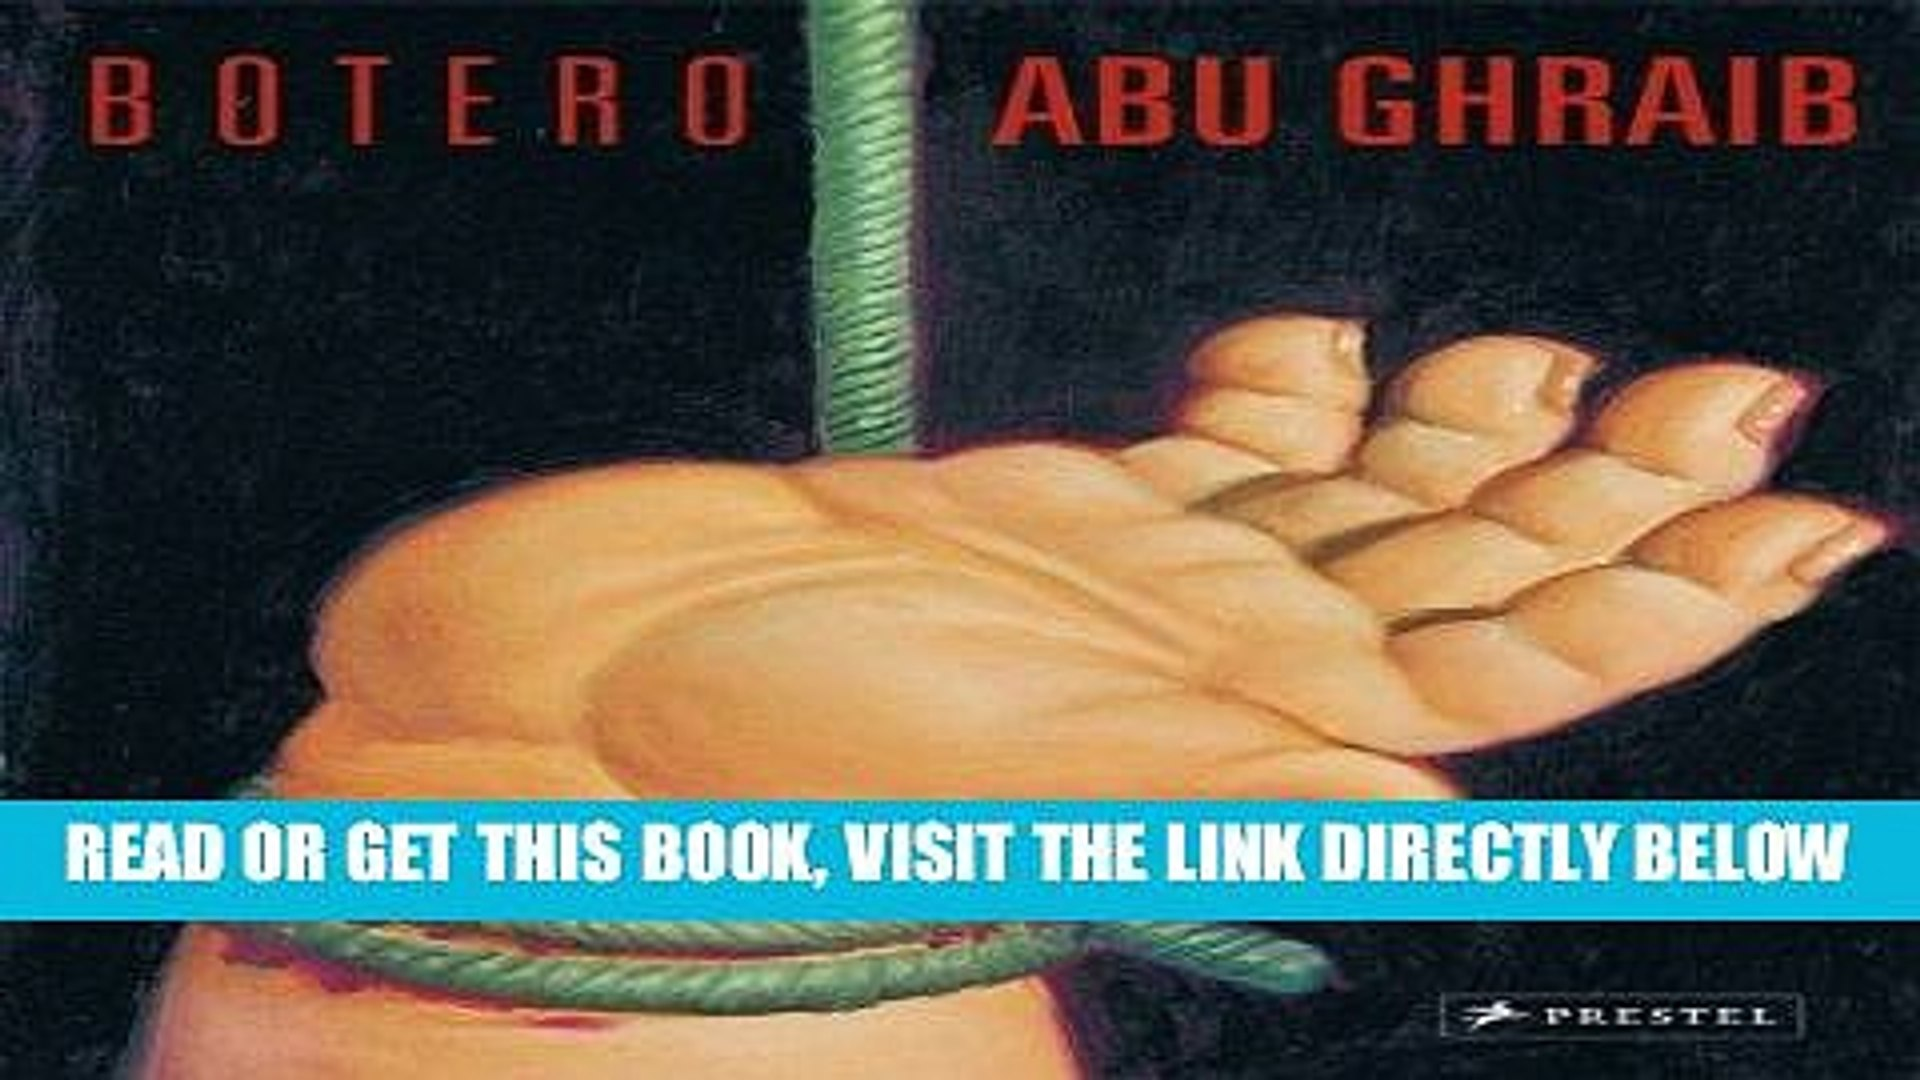 [FREE] EBOOK Botero Abu Ghraib ONLINE COLLECTION